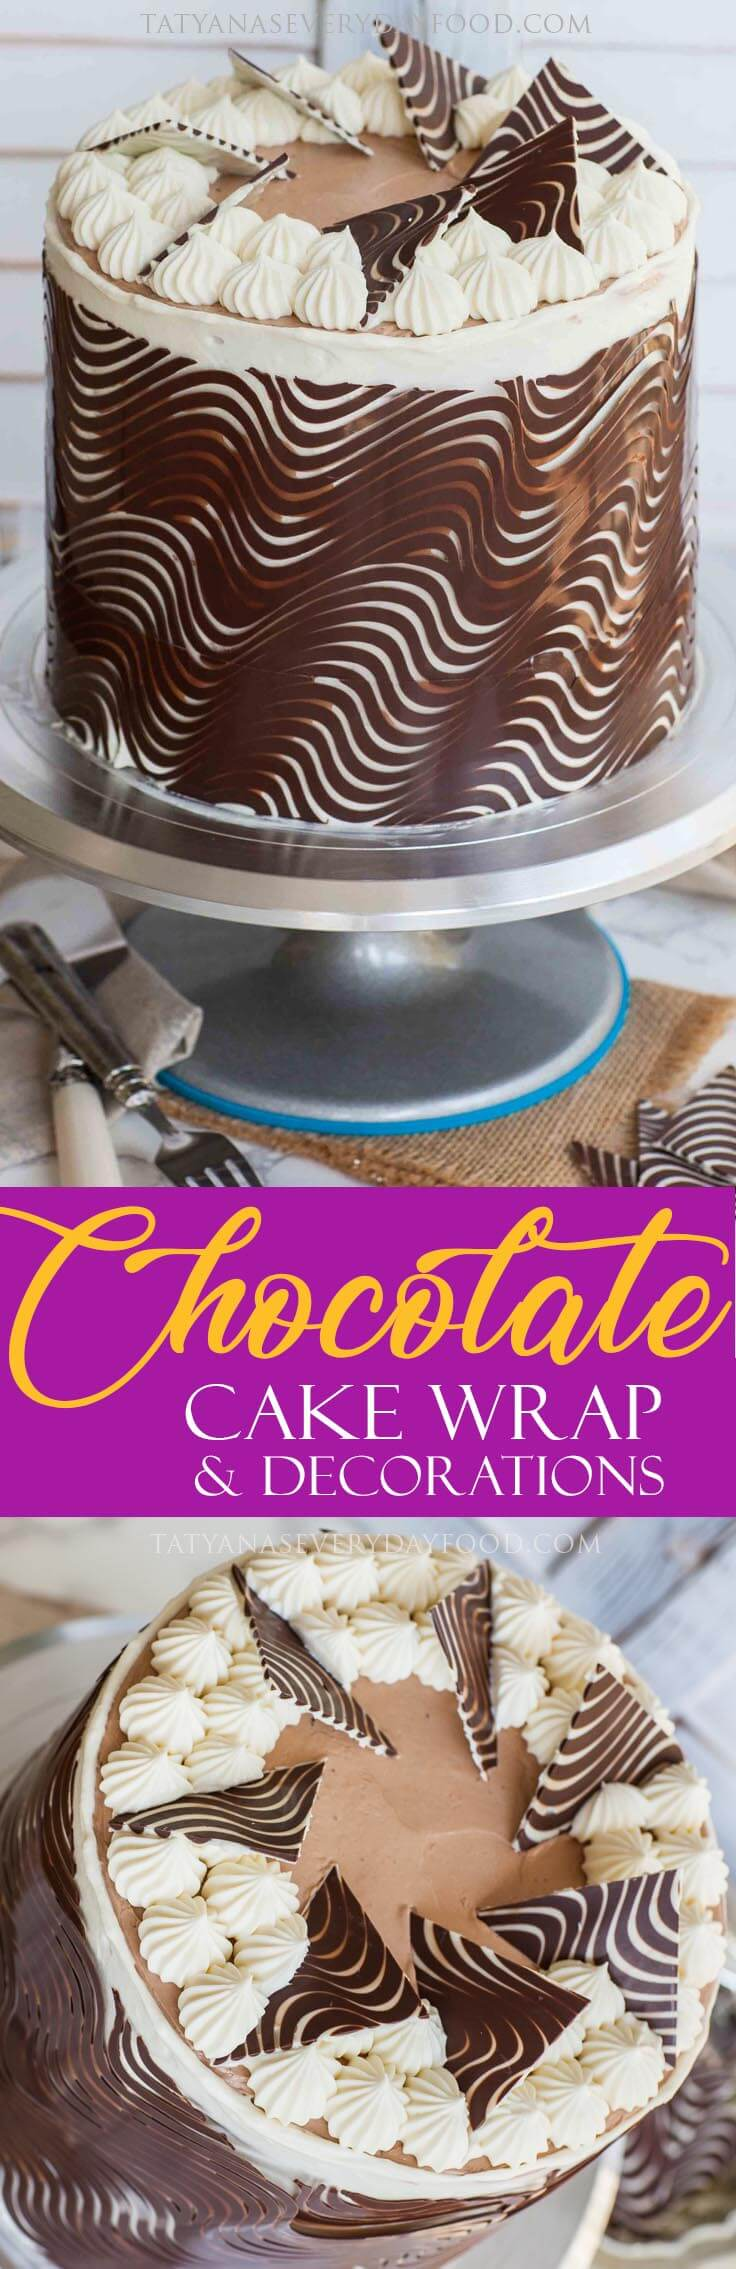 Chocolate Cake Wrap Decorating Tutorial with video